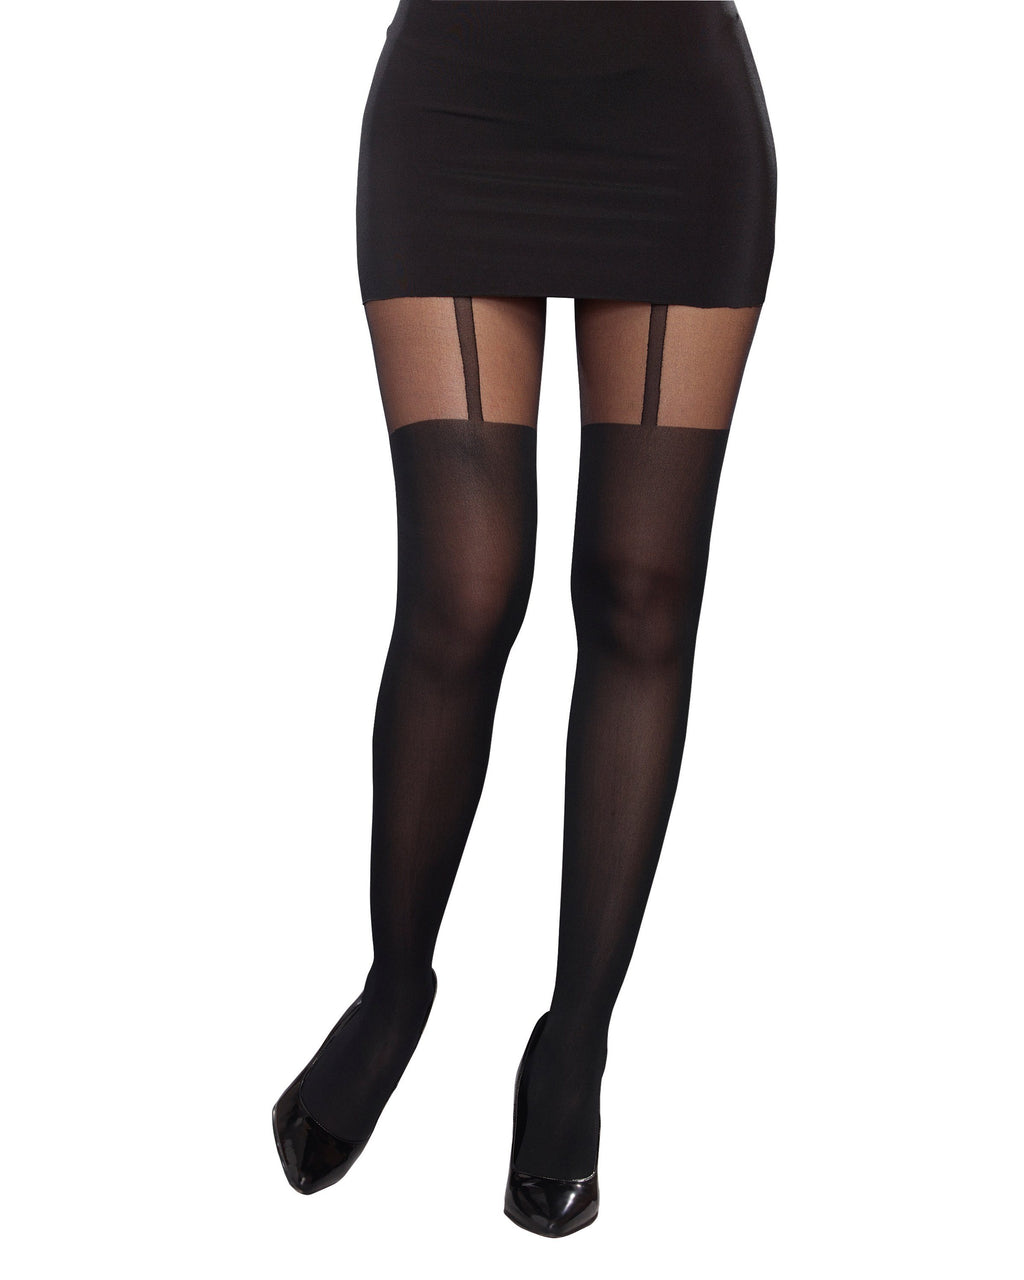 Sheer Pantyhose With Garters Costume Hosiery Dreamgirl Costume